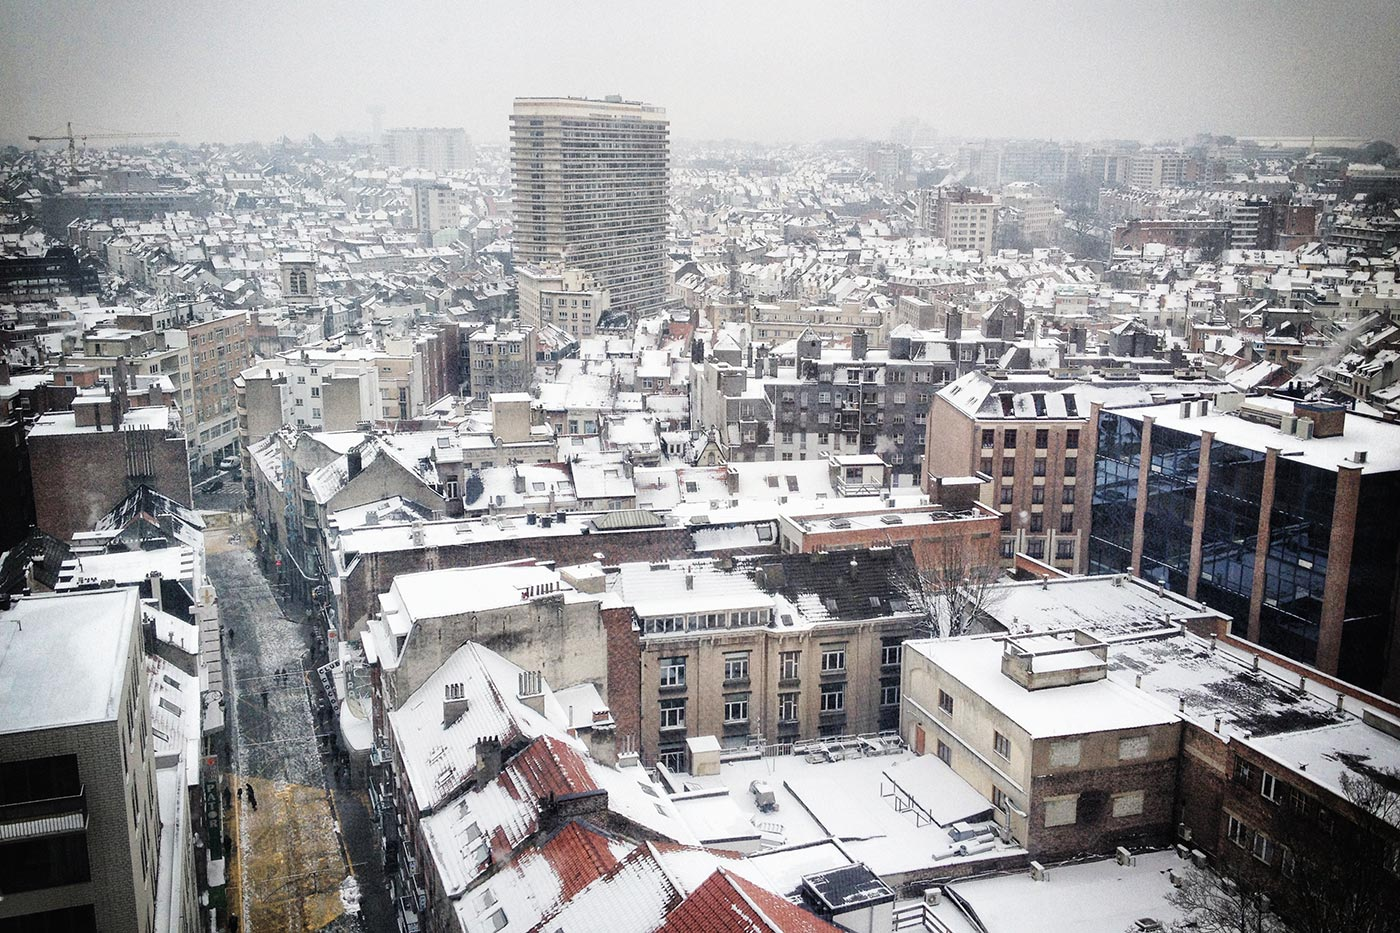 brussels_rooftops_in_winter_8521543482